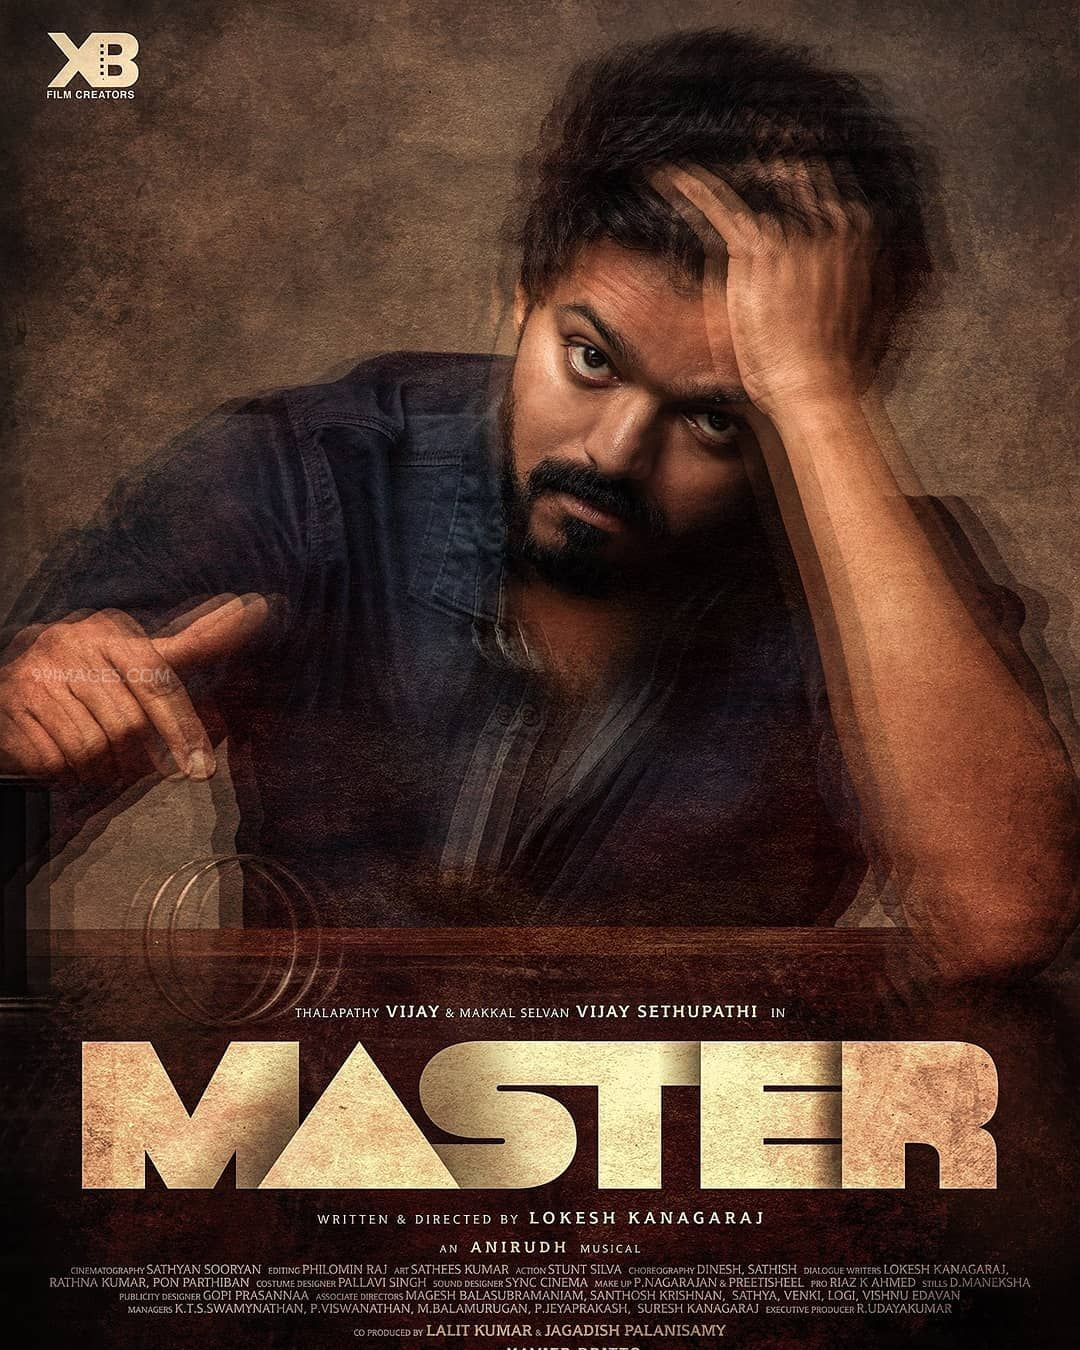 65 Master Movie Latest Hd Photos Stills Posters Wallpapers Download 1080p 4k 1080x1350 2020